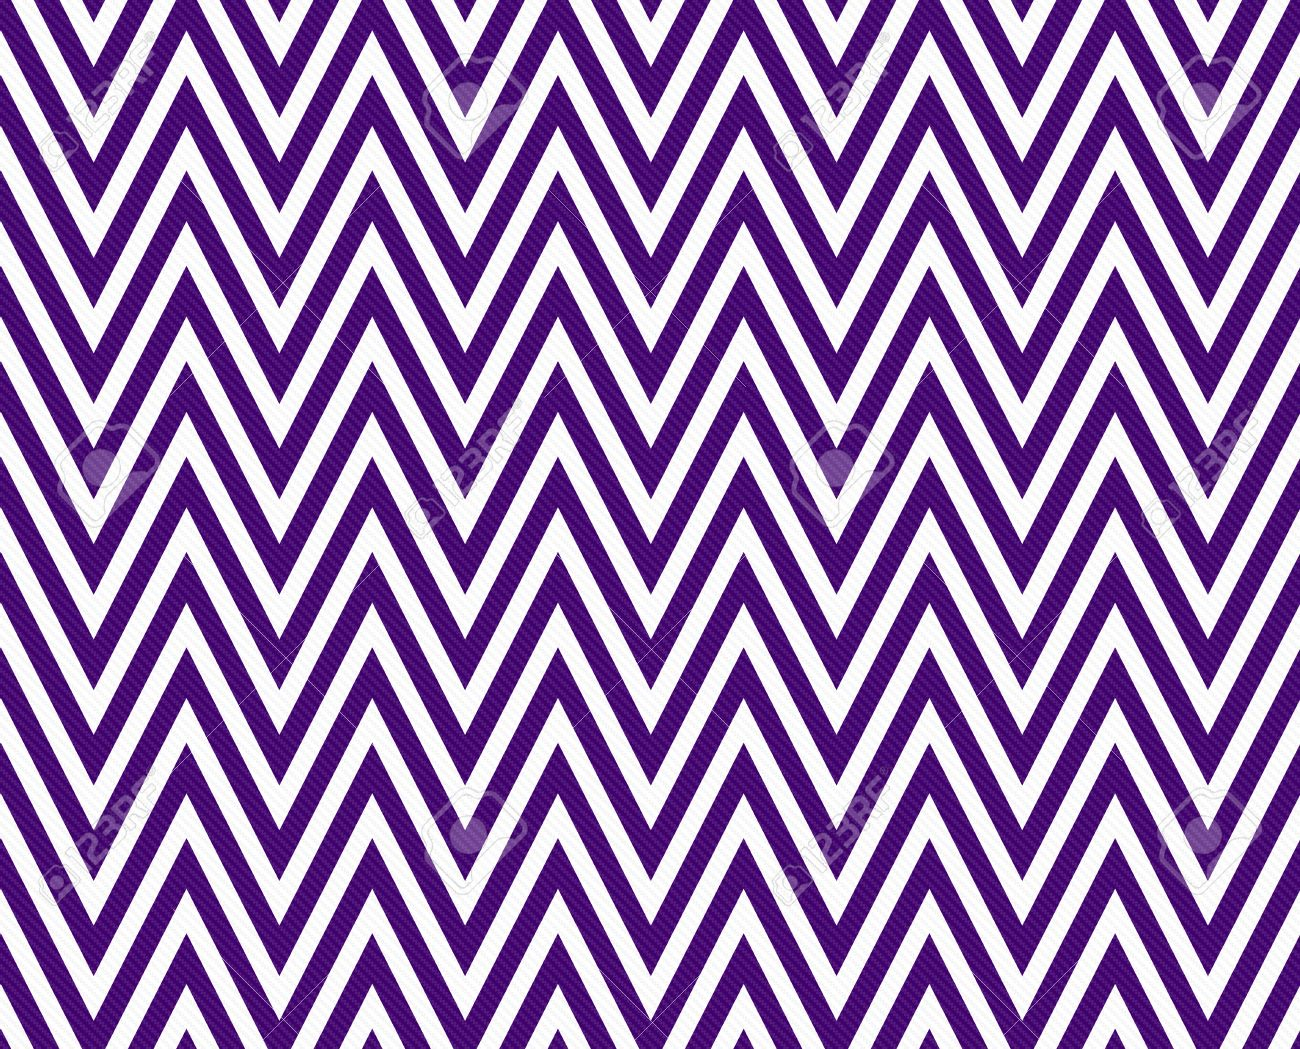 Thin Dark Purple And White Horizontal Chevron Striped Textured ...